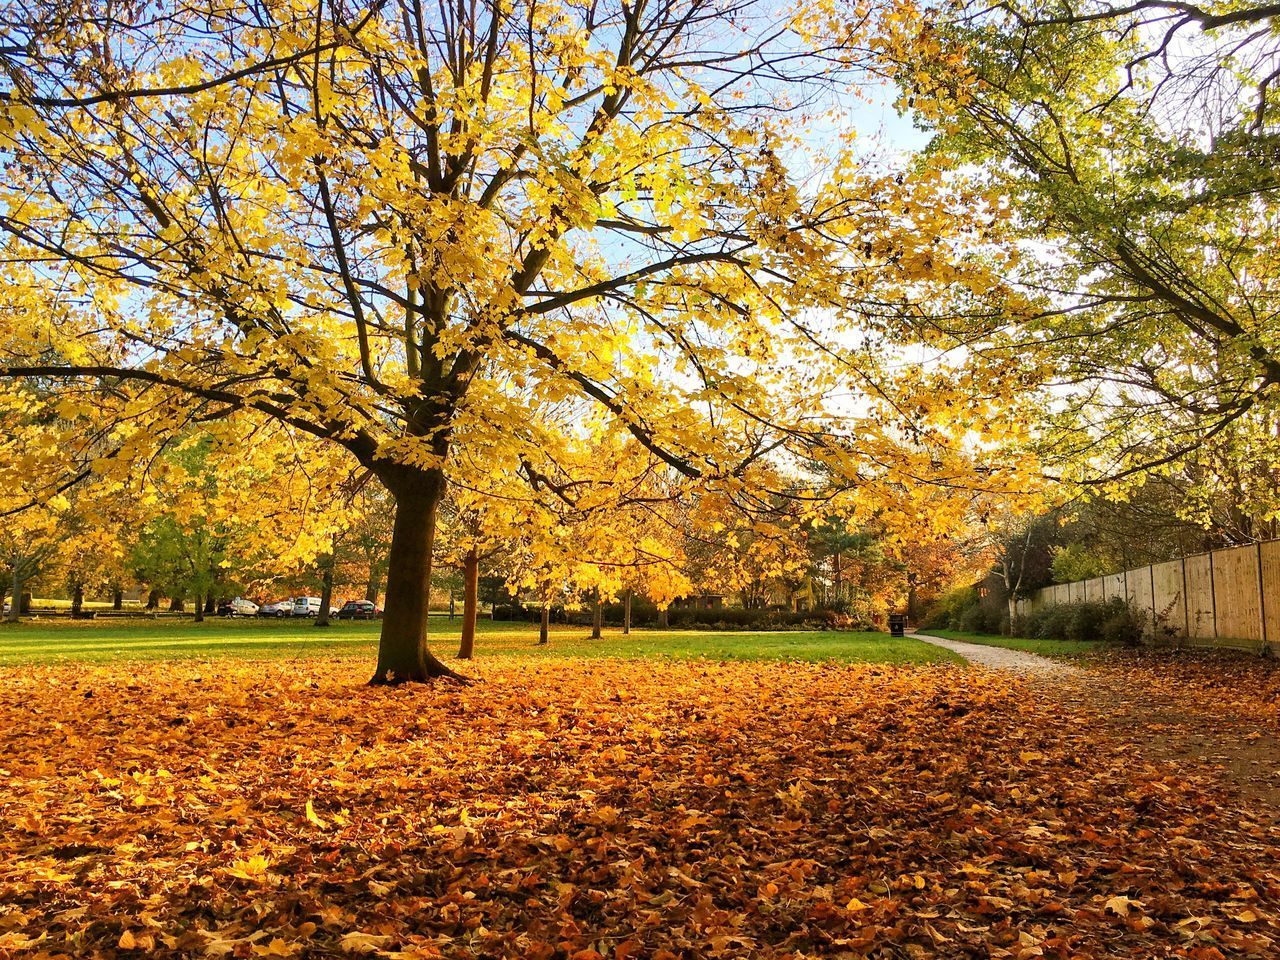 VIEW OF AUTUMNAL TREES IN PARK DURING AUTUMN